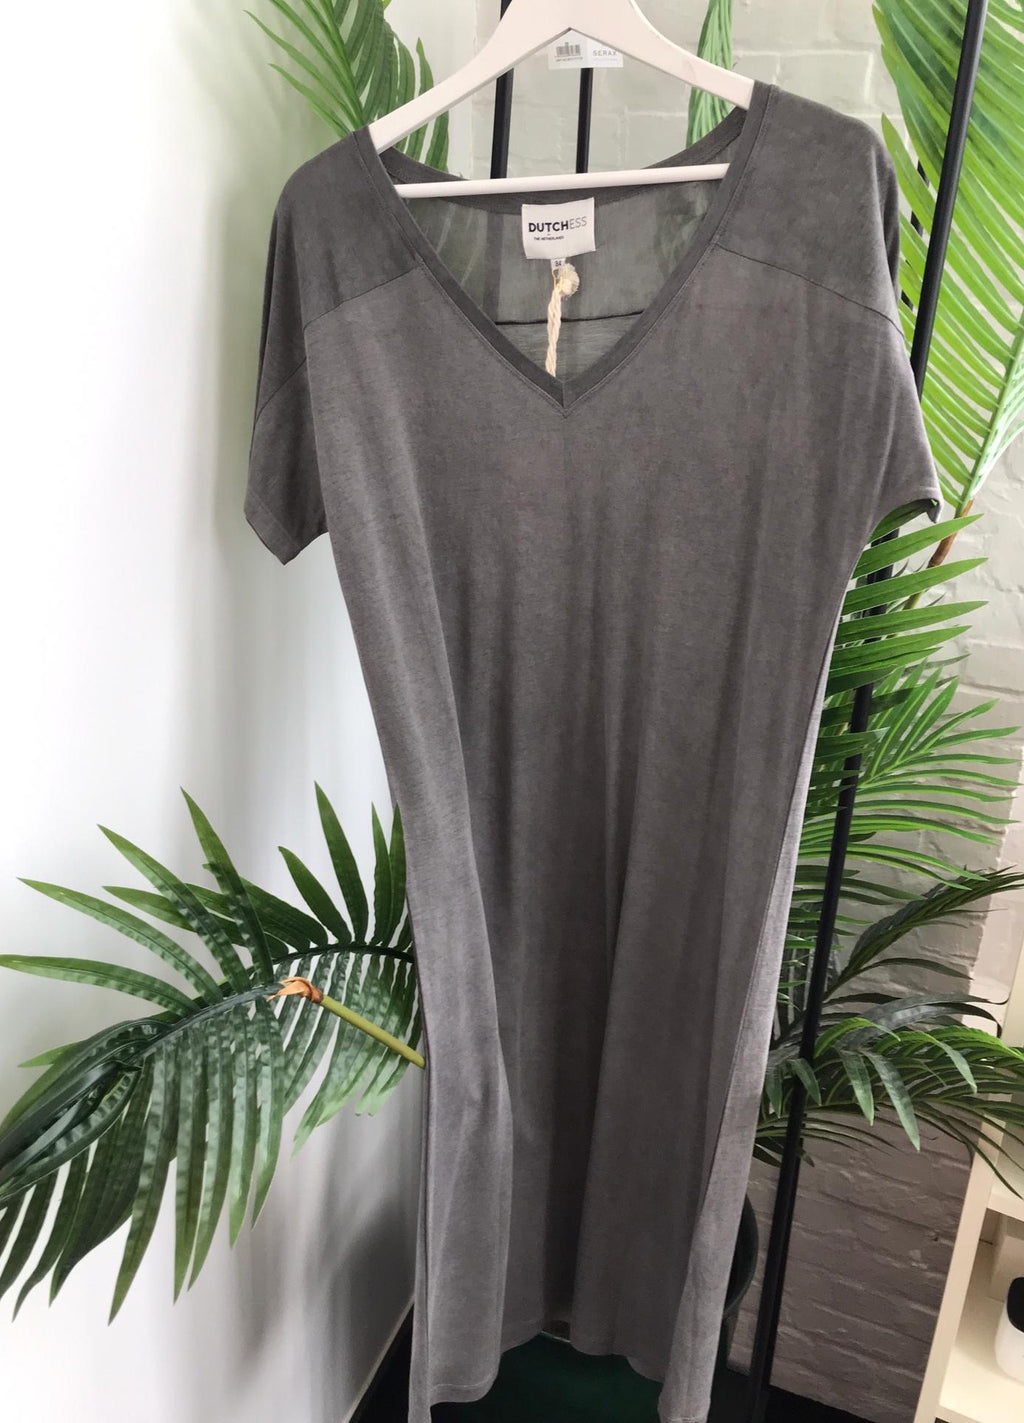 Grey Akari dress by Dutchess.